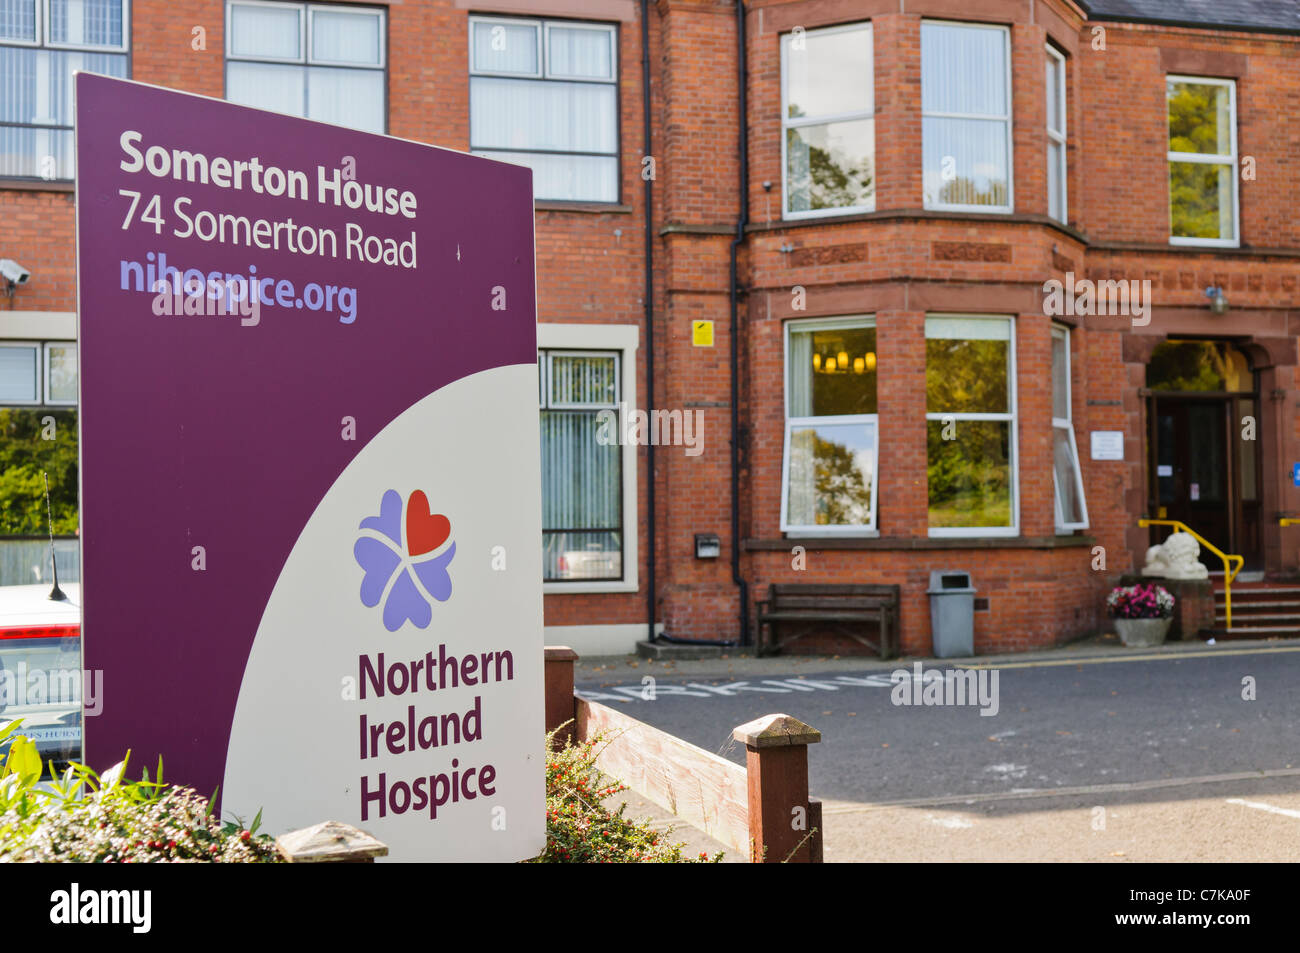 Somerton House, Northern Ireland Hospice - Stock Image